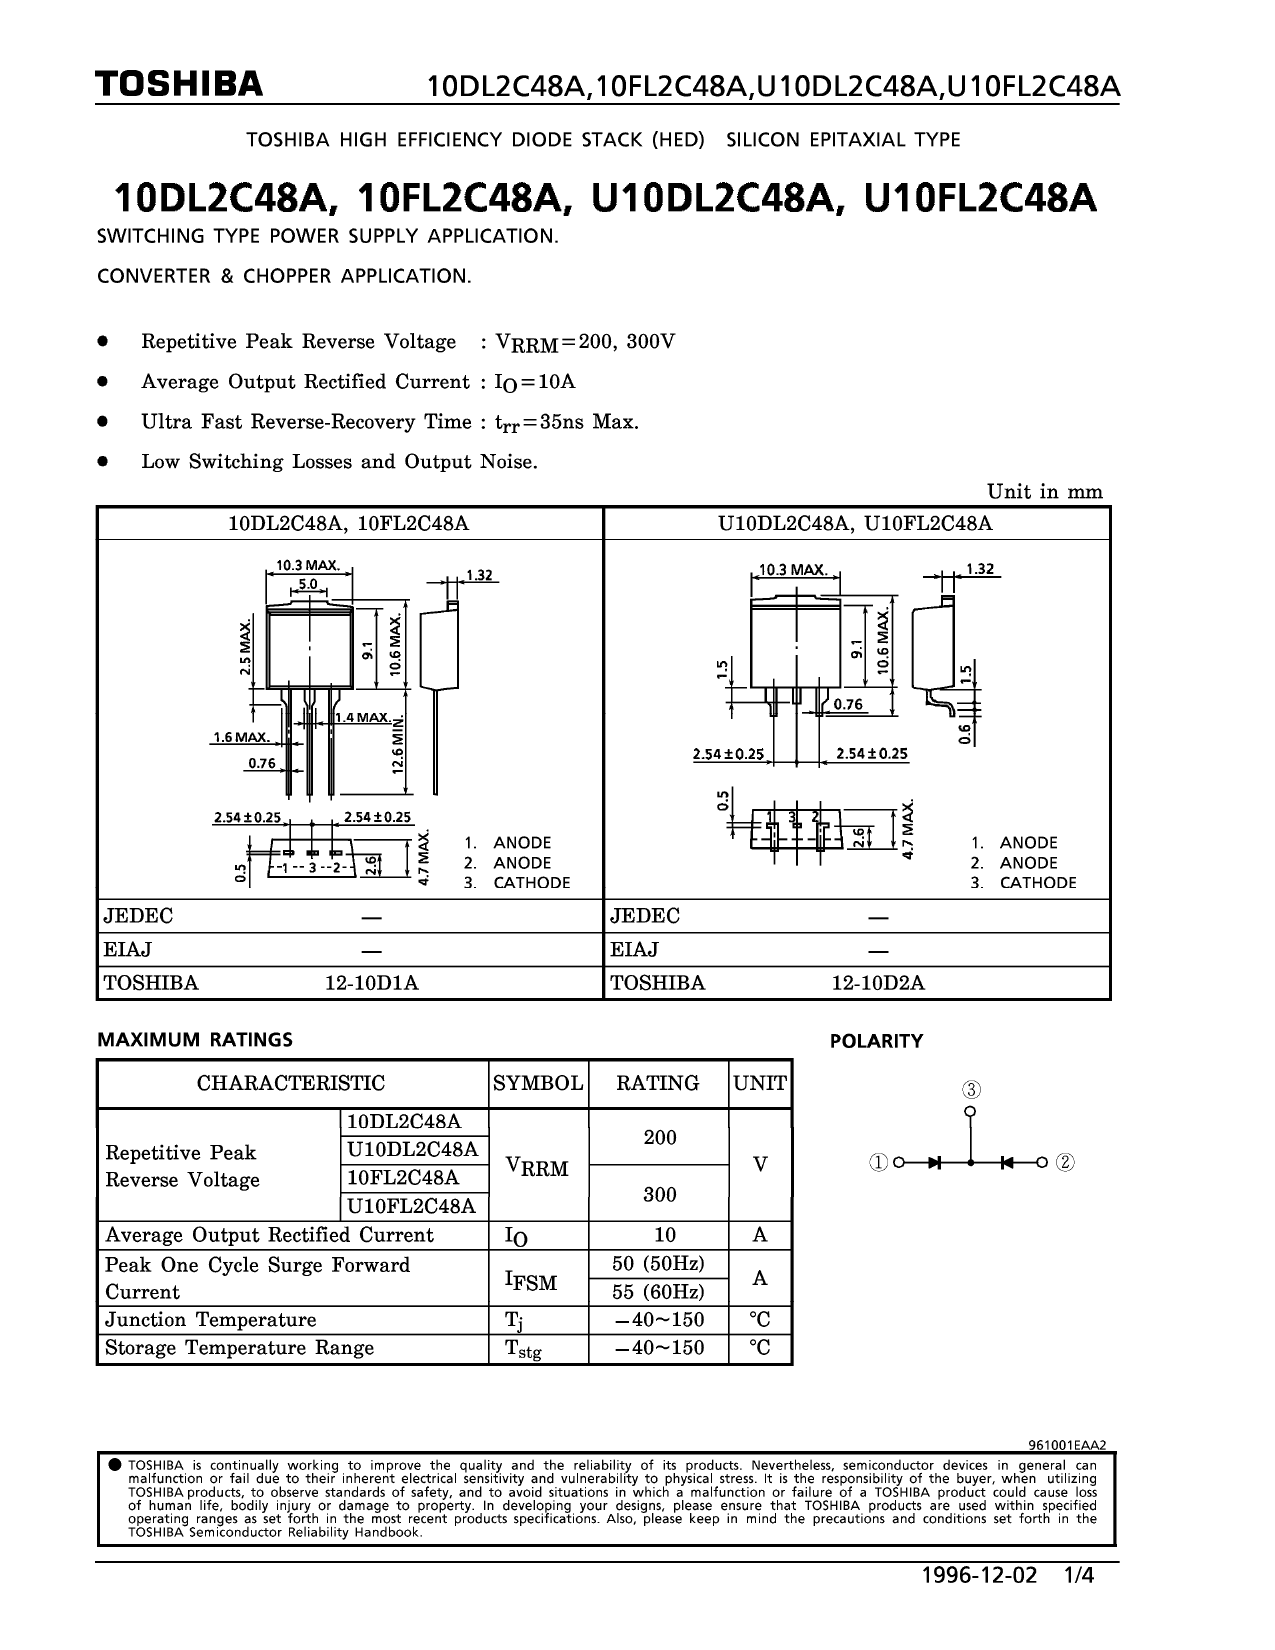 types of diodes and their application pdf